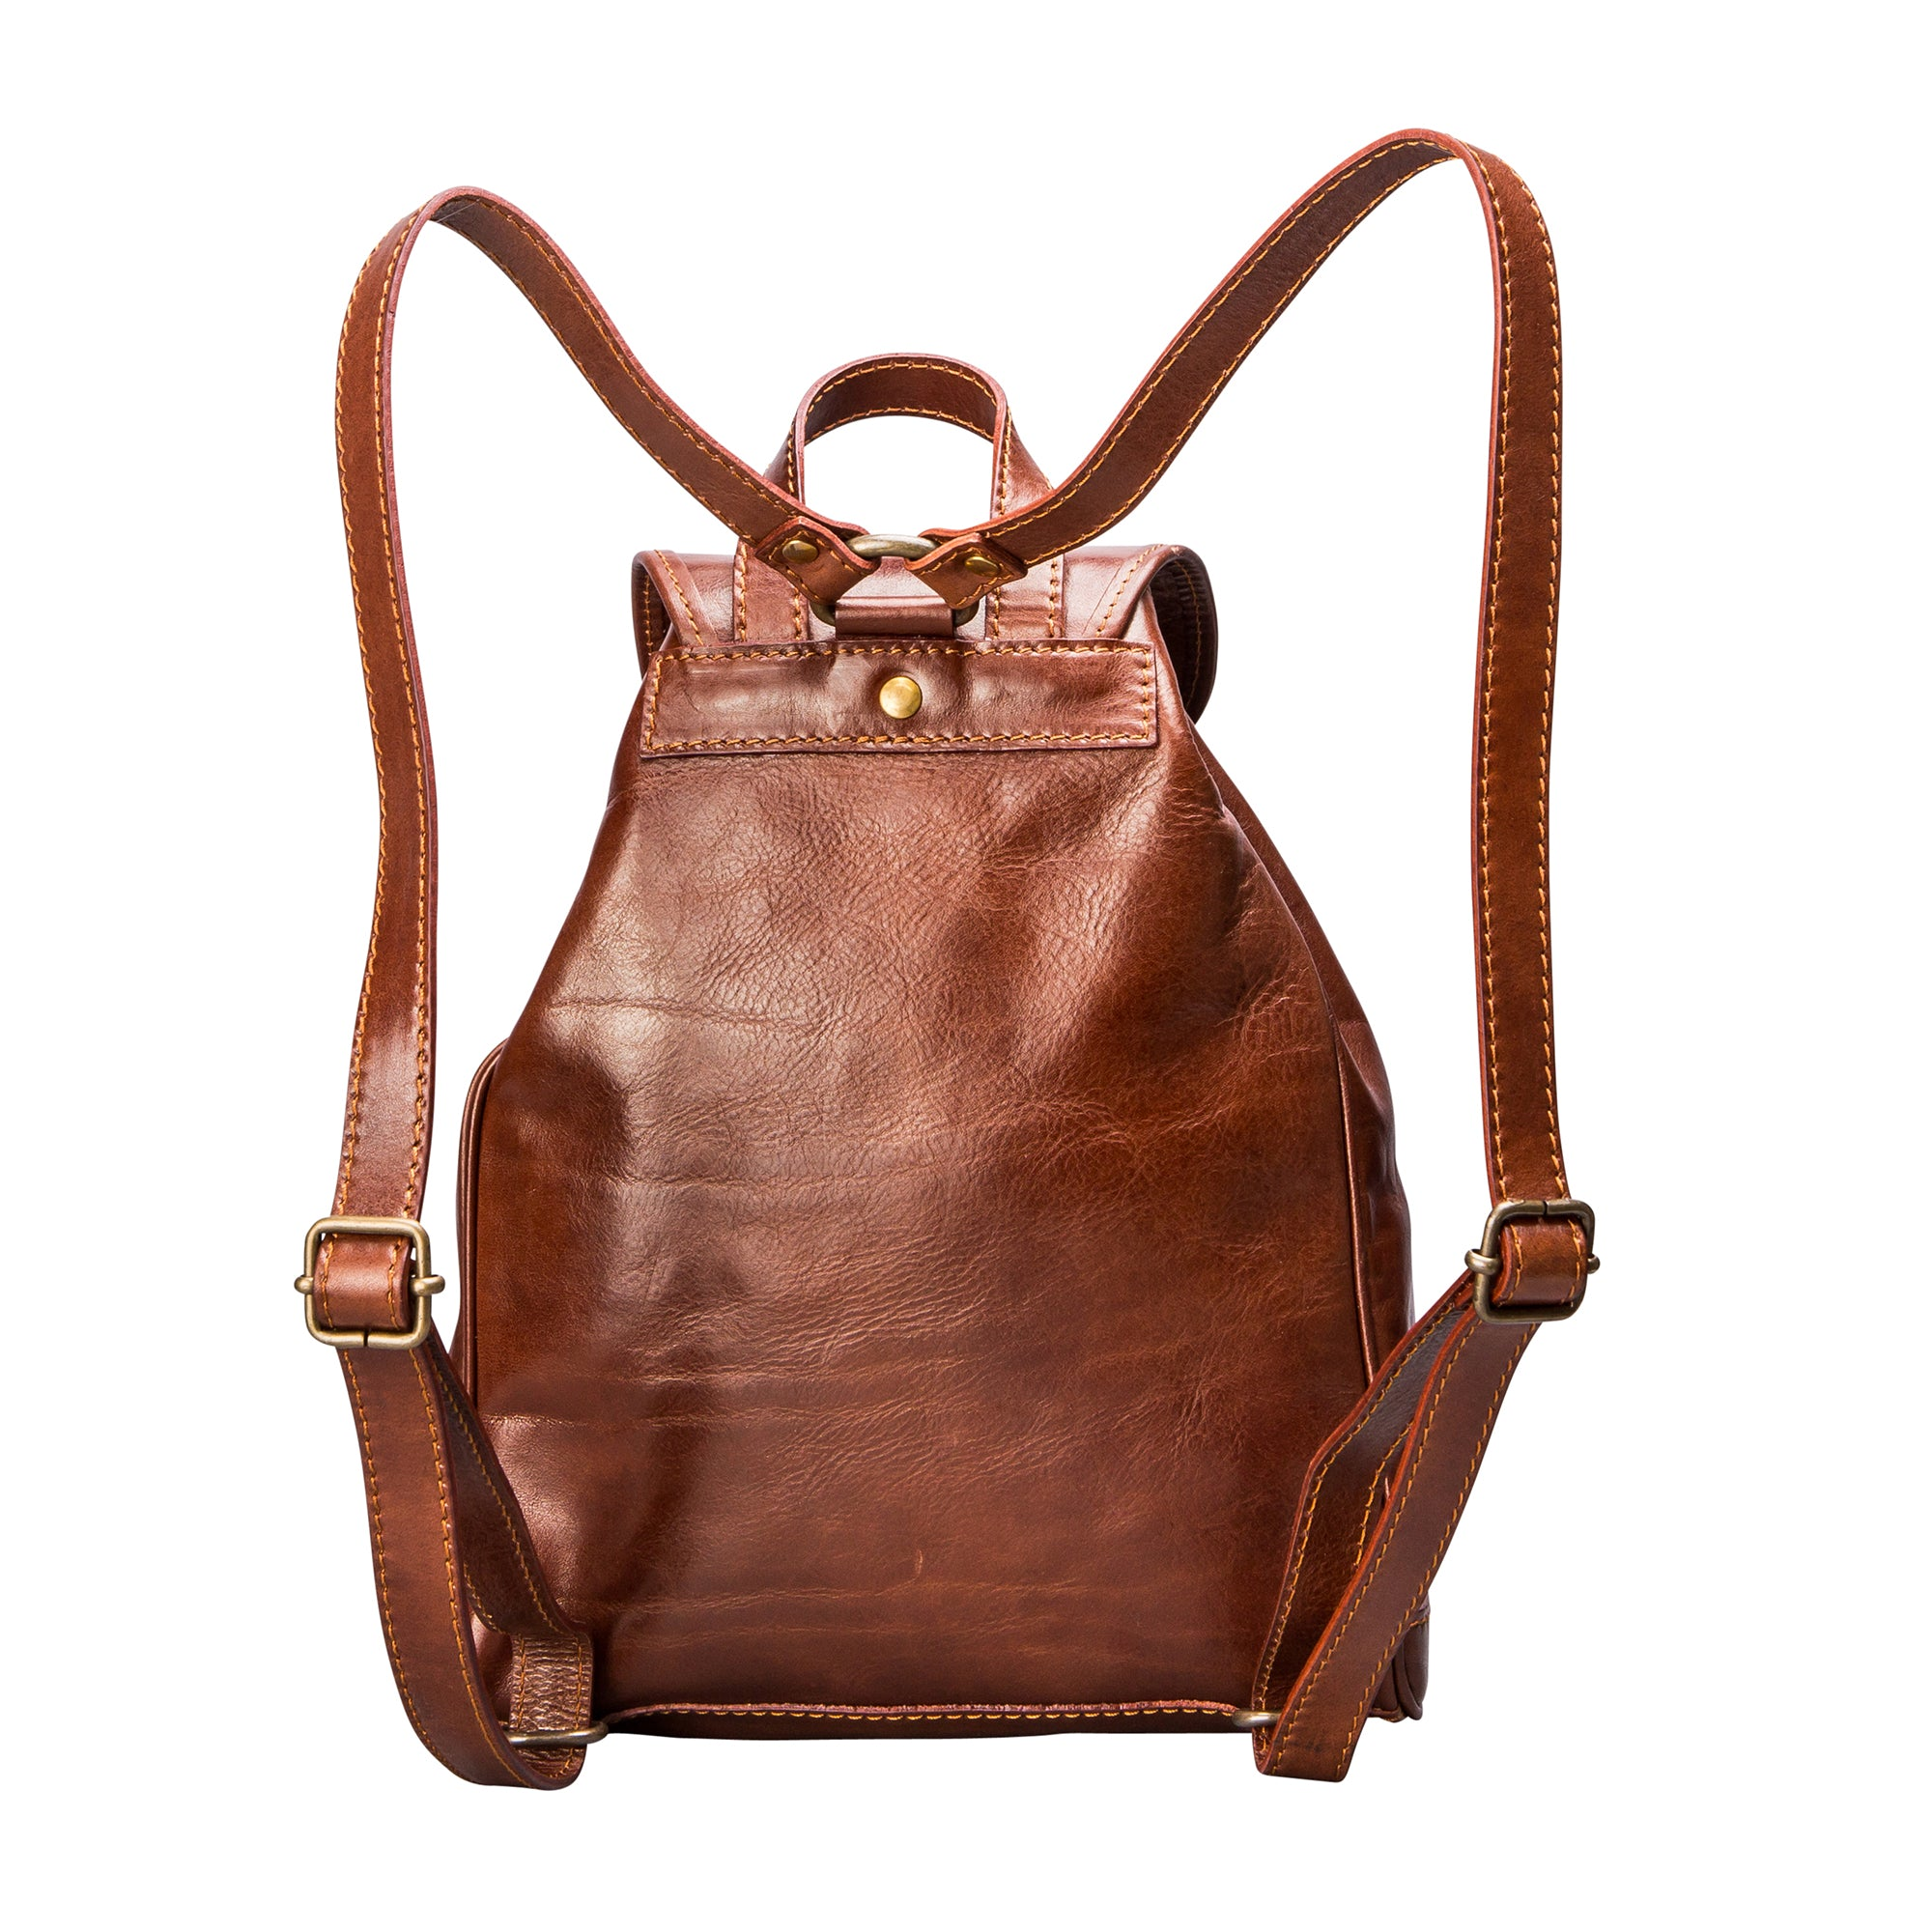 Image 4 of the 'Sparano' Chestnut Veg-Tanned Leather Backpack